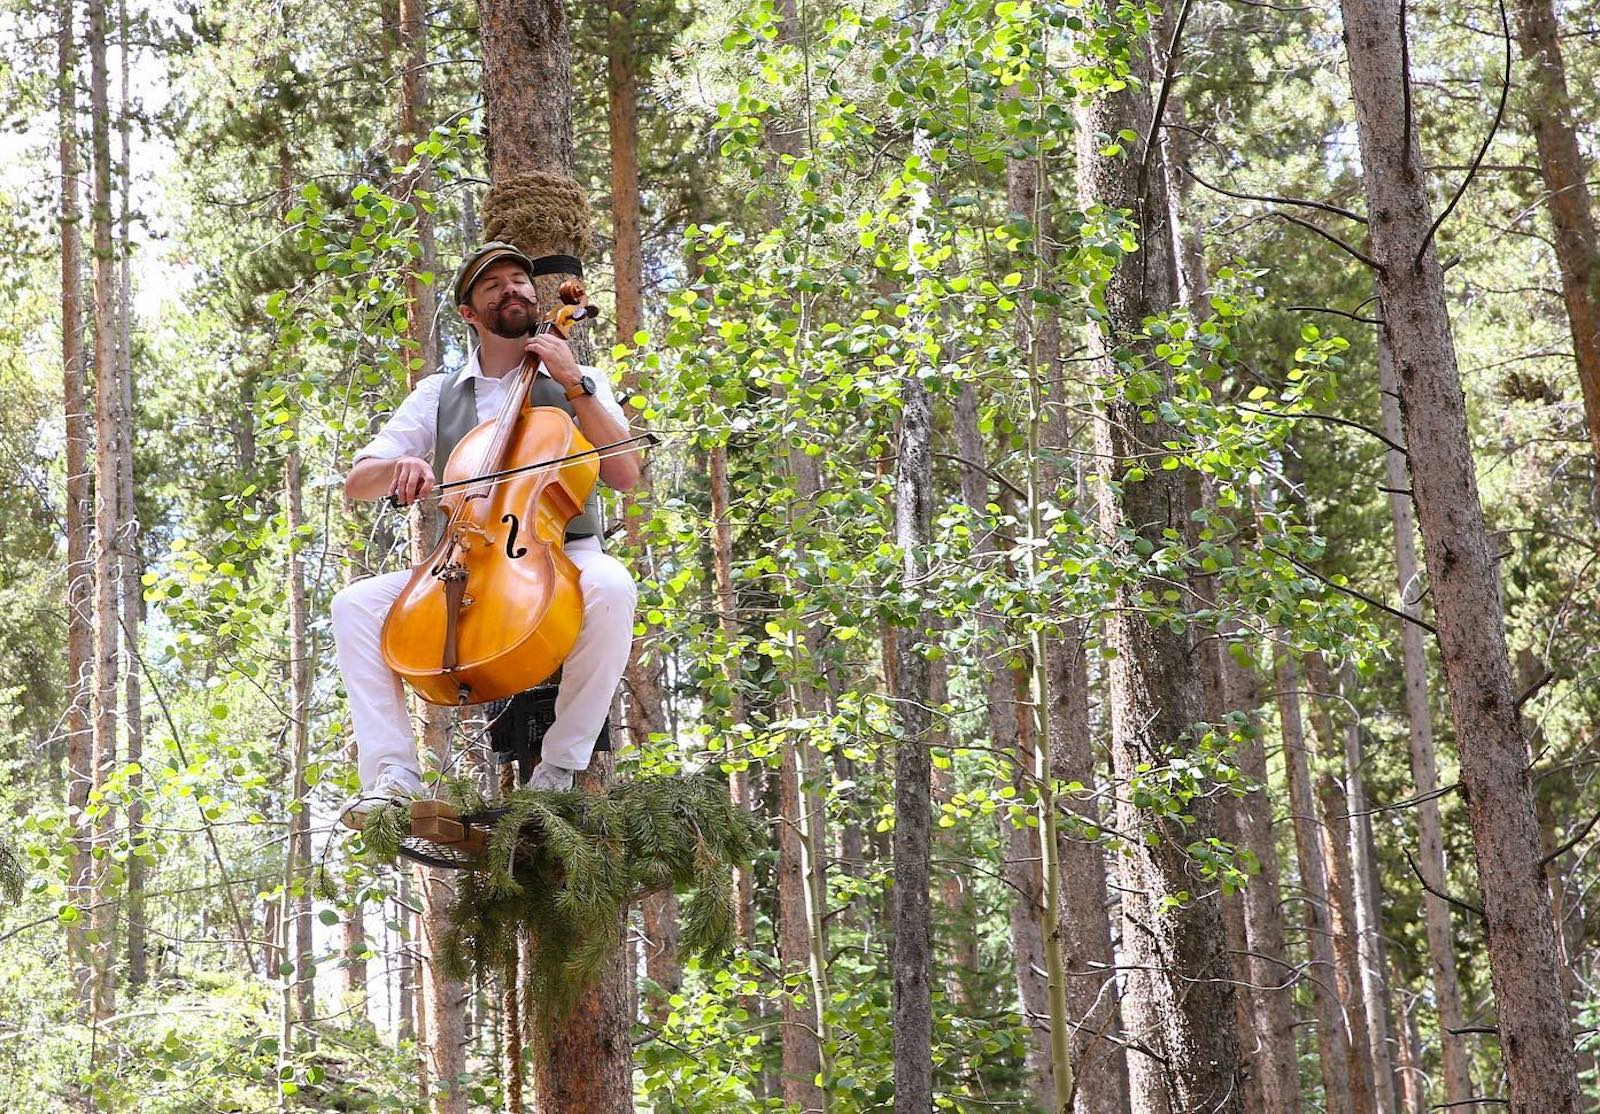 Image of a man playing a cello in a tree in the forest in Breckenridge, Colorado